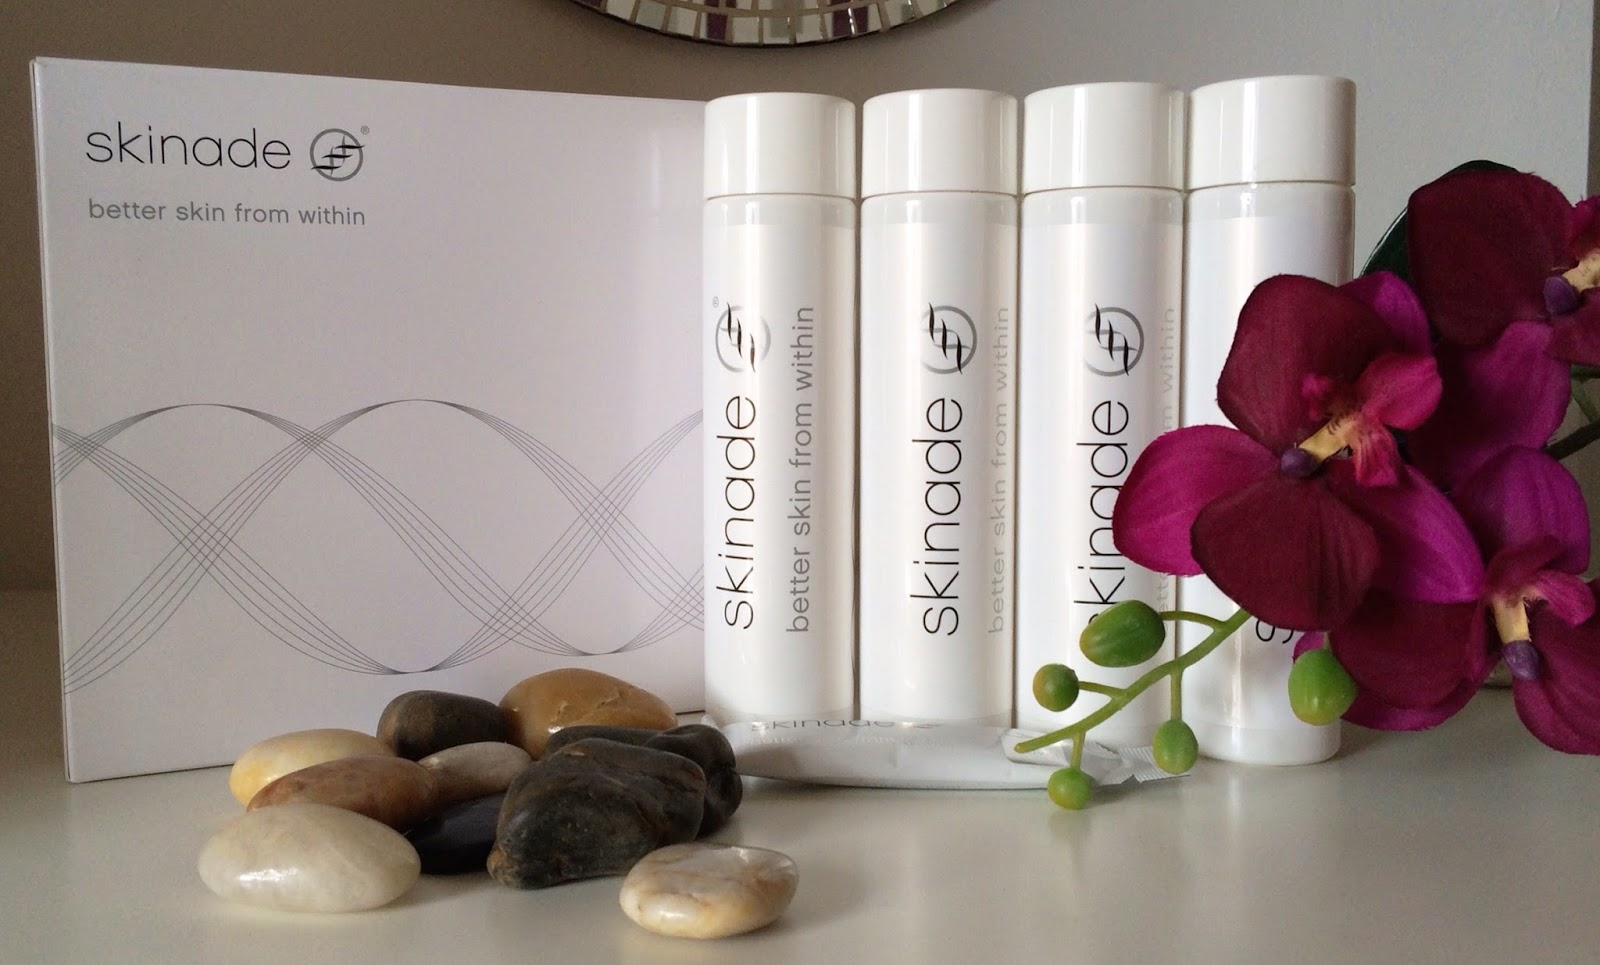 Skinade skin supplement collagen Health lifestyle